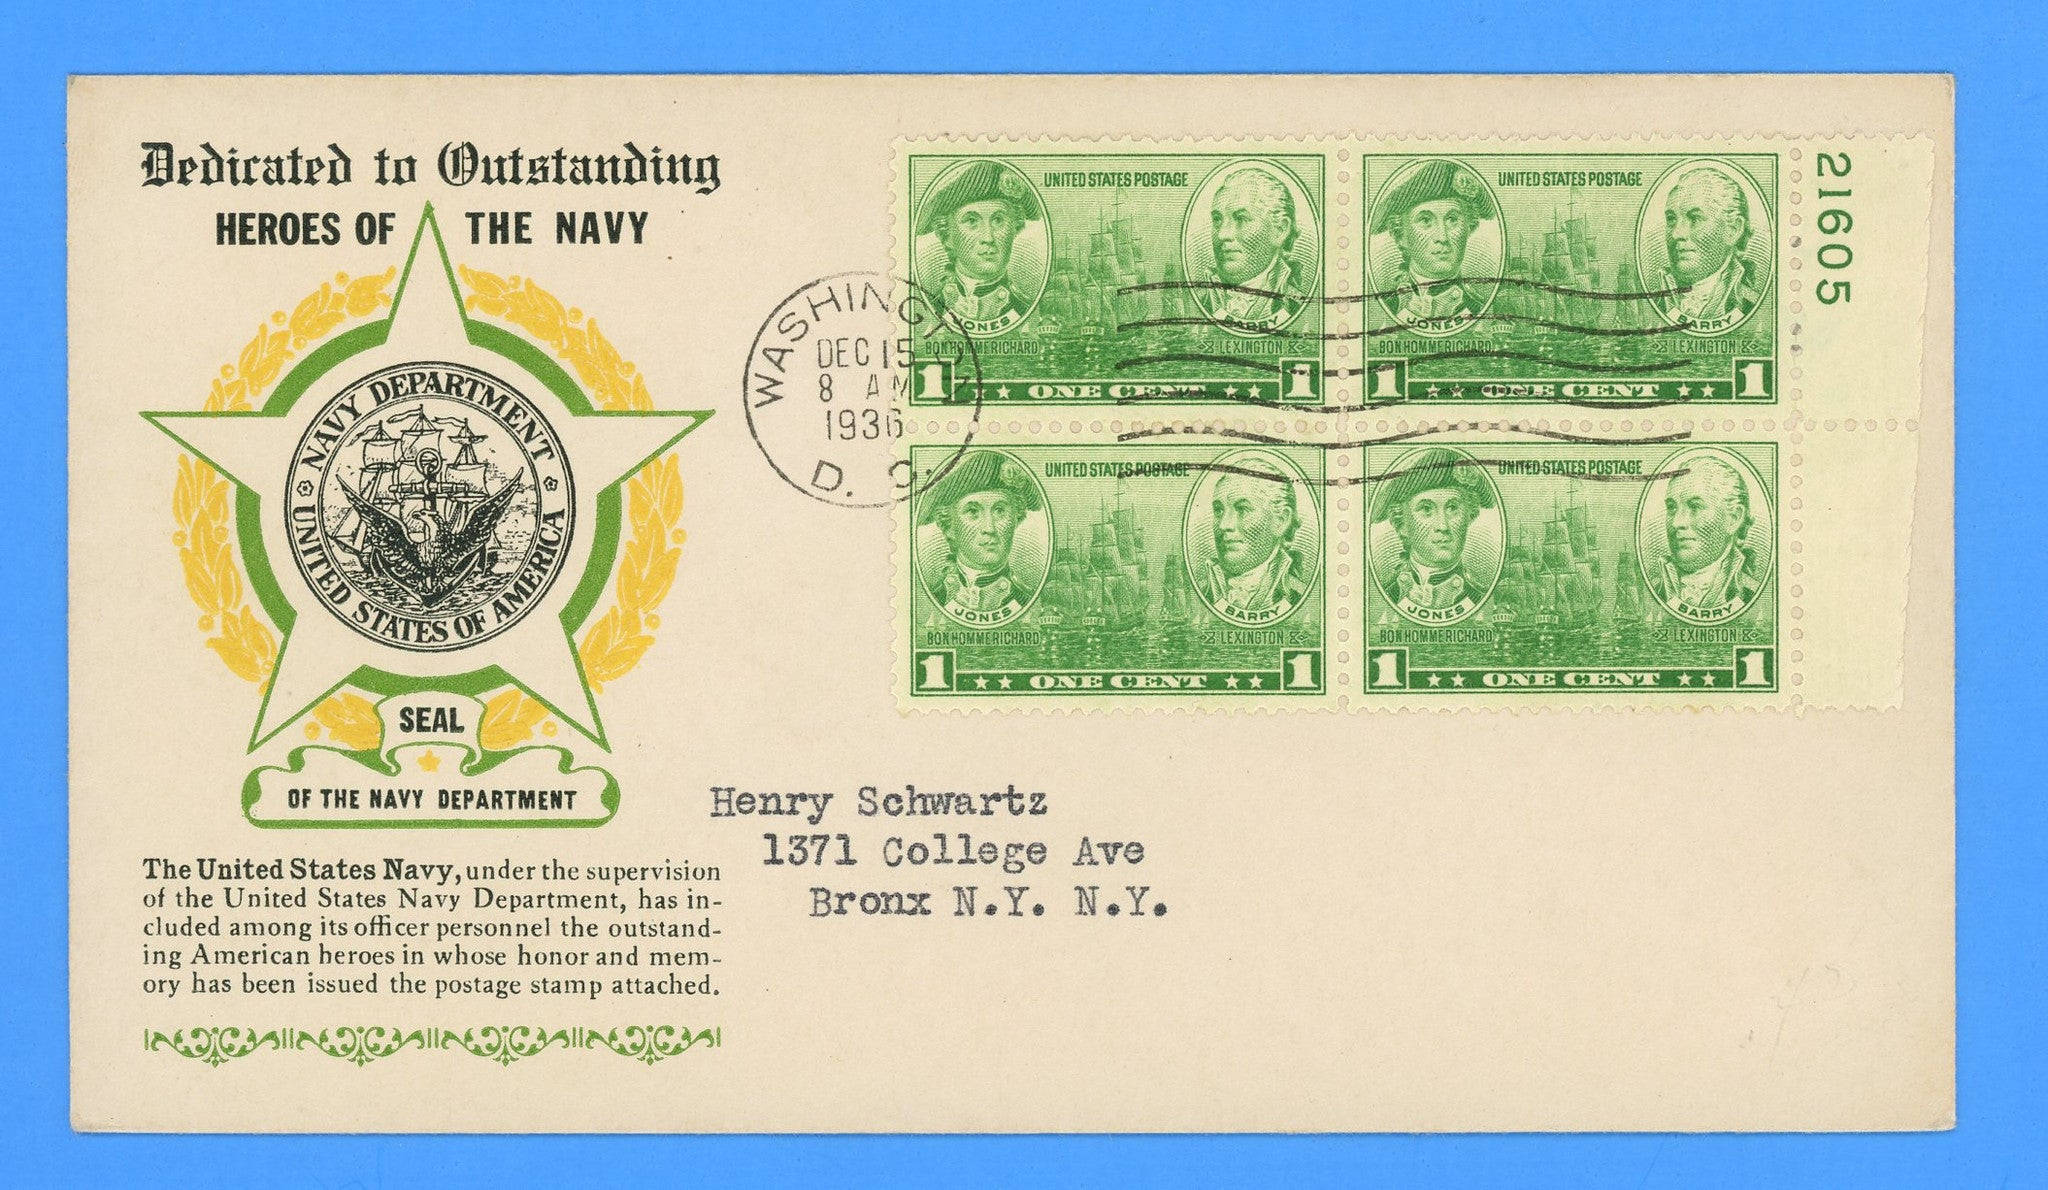 Scott #790 1c Army-Navy Naval Heroes Jones & Barry First Day Cover by Eugene Laird - Plate Block